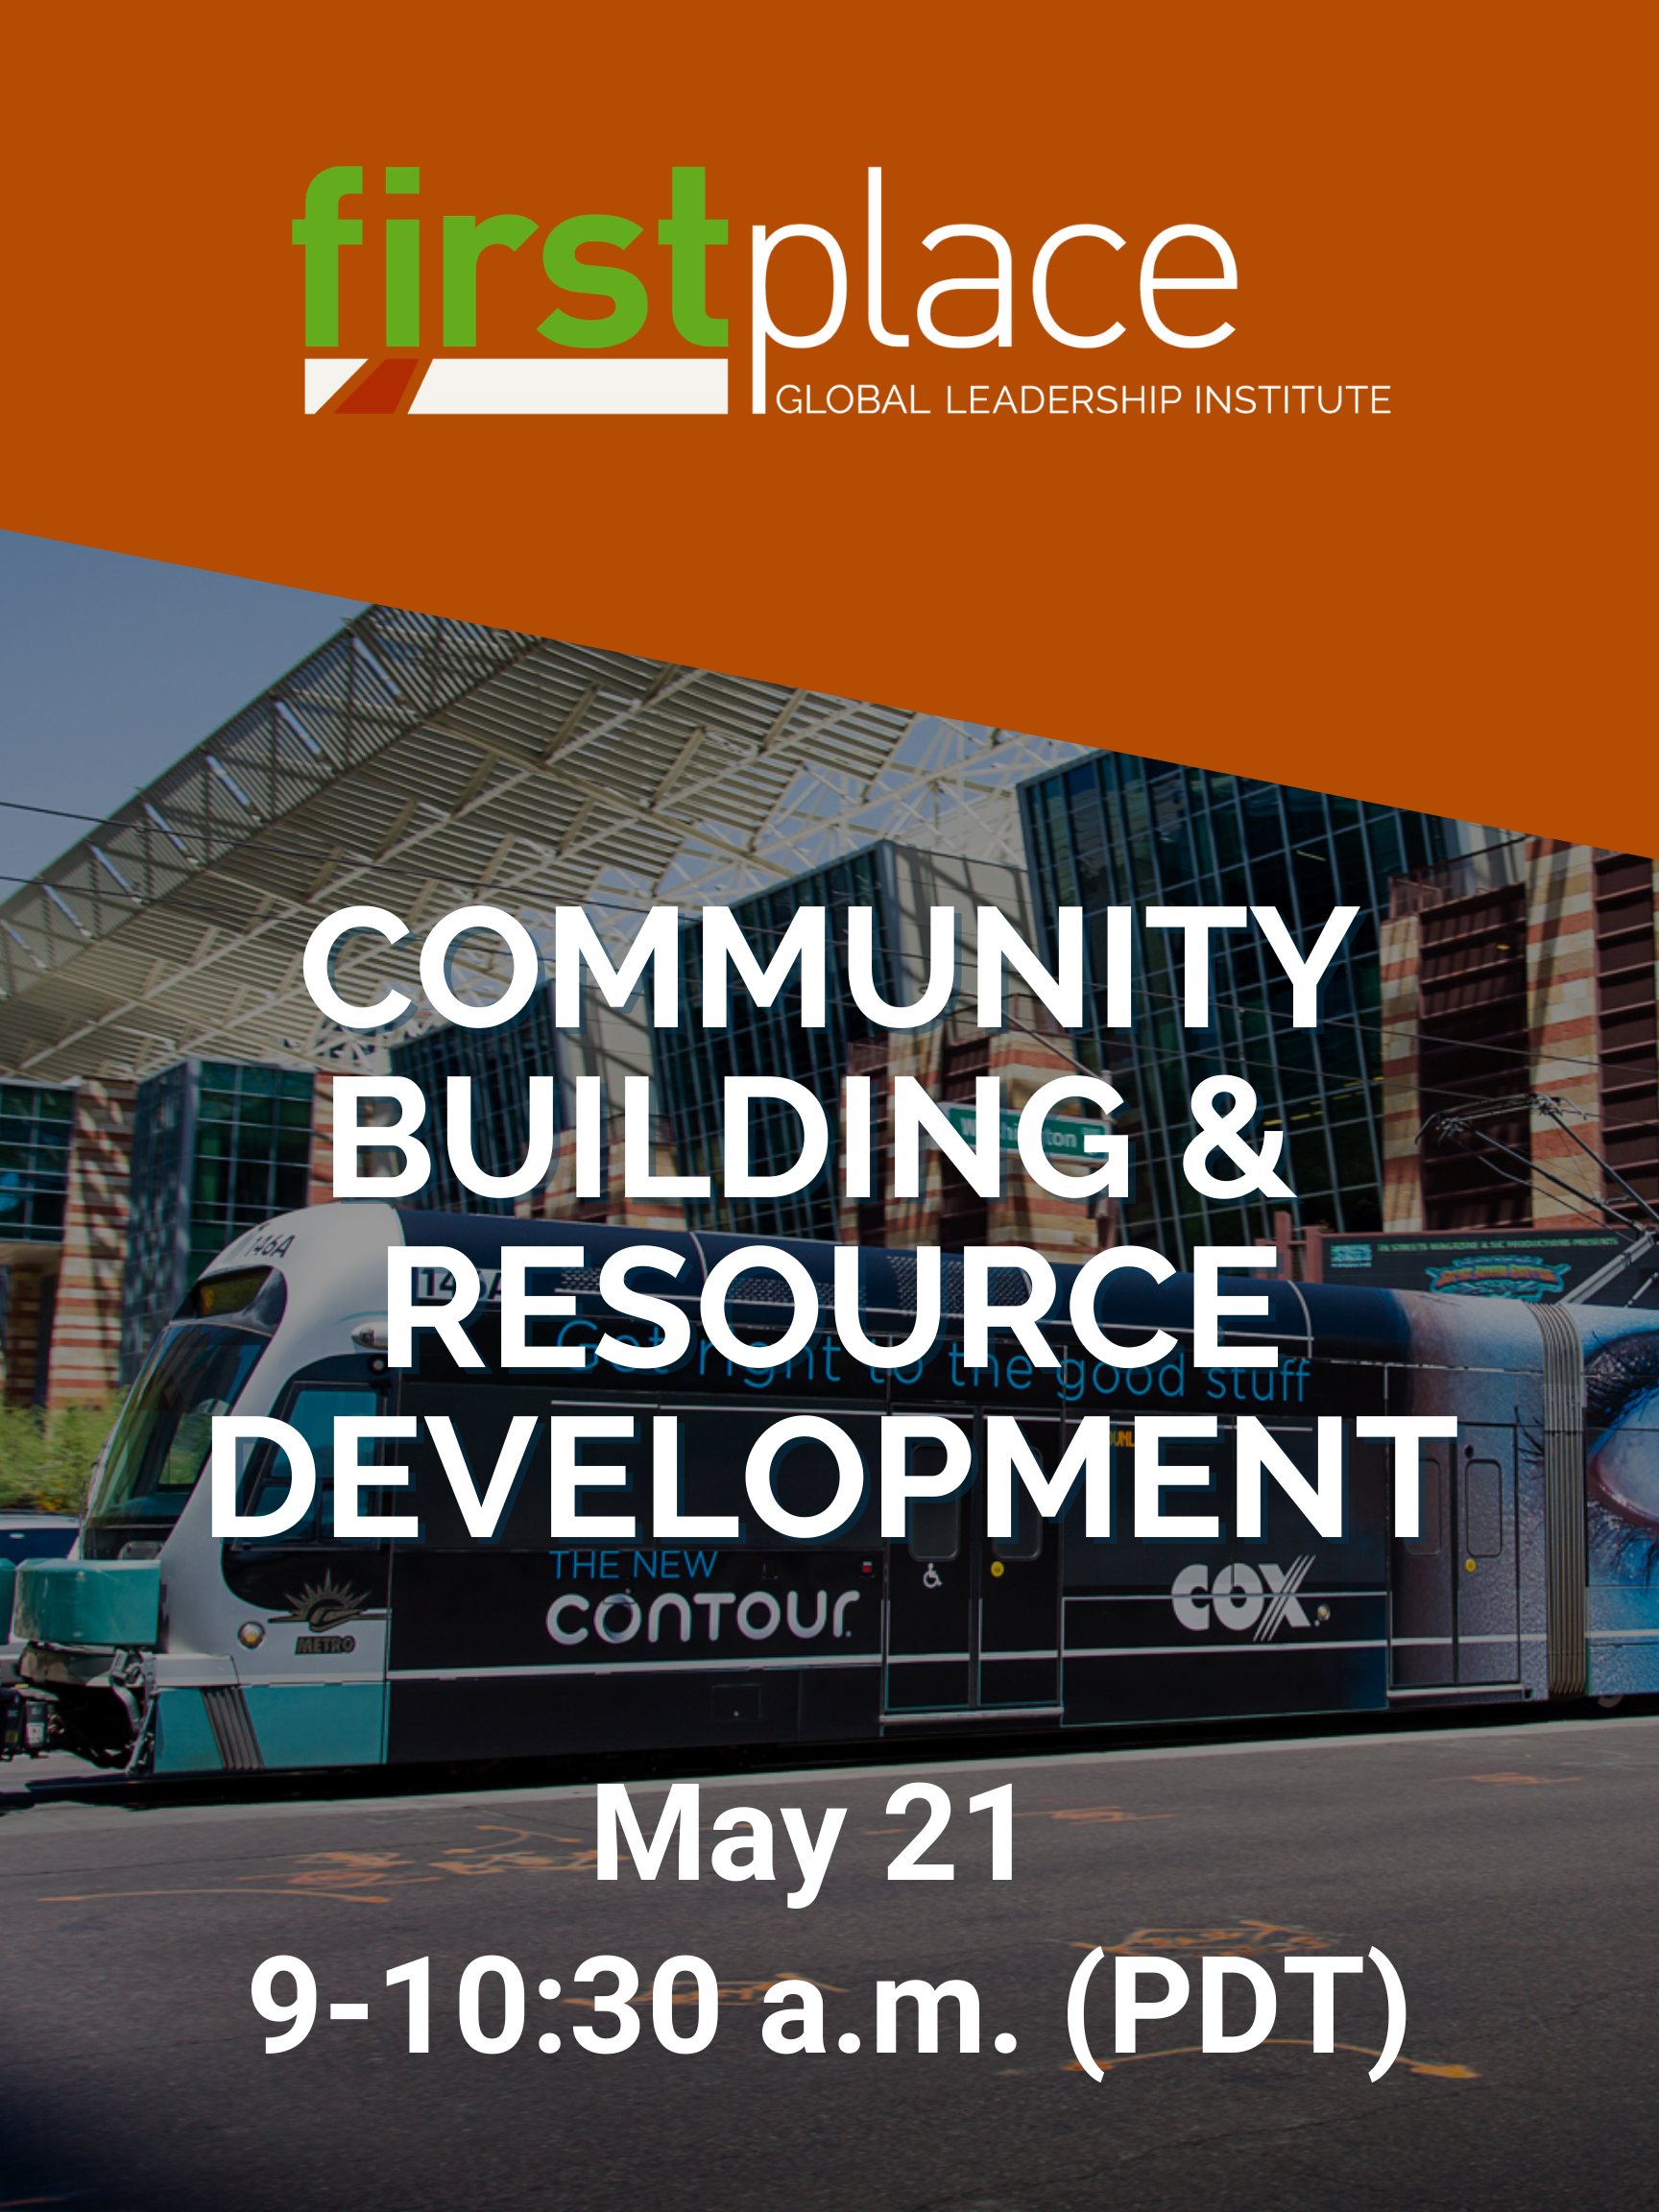 Community Building & Resource Development - May 21, 2021, 9 a.m. (PDT)